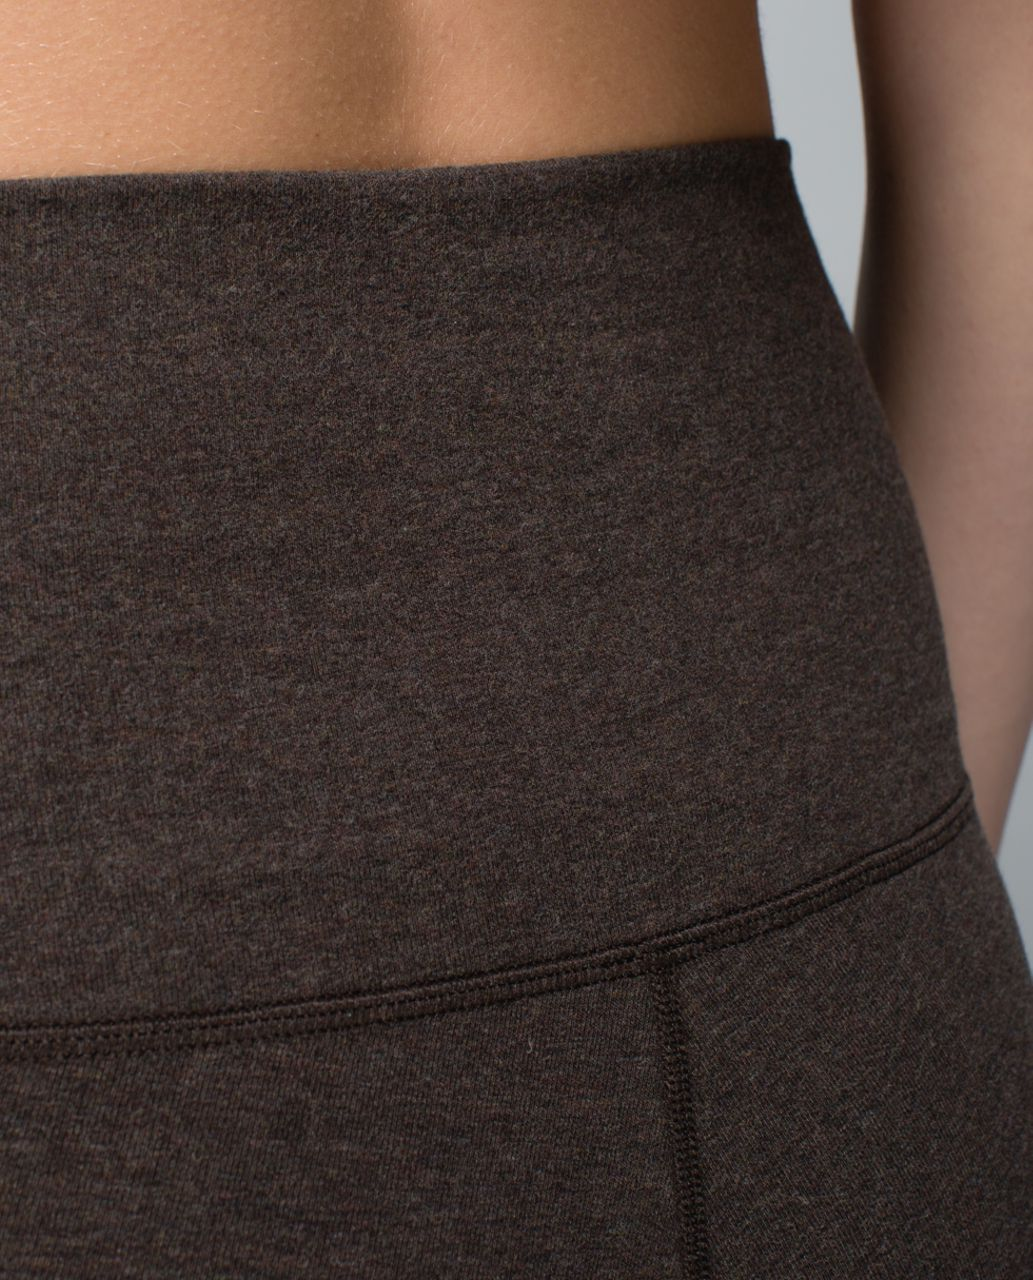 Lululemon Wunder Under Pant *Cotton (Roll Down) - Heathered Bark Chocolate